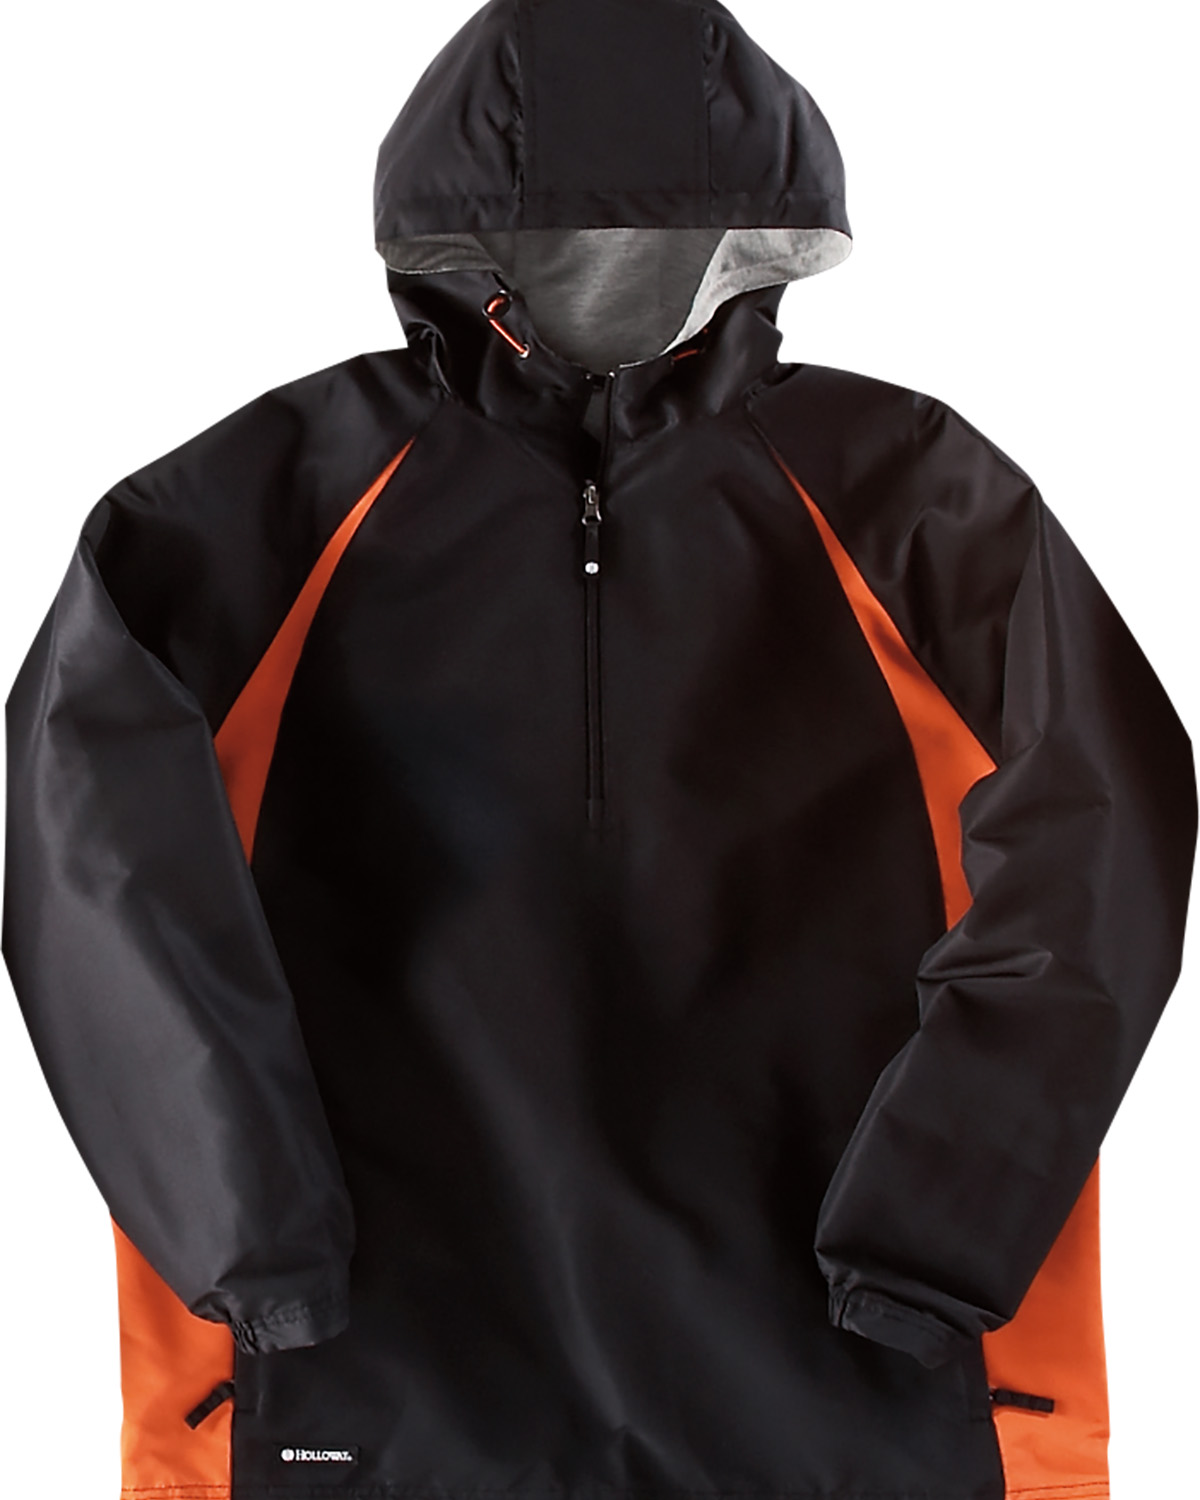 Holloway 229064 - Adult Polyester 1/4 Zip Hooded Hurricane Jacket